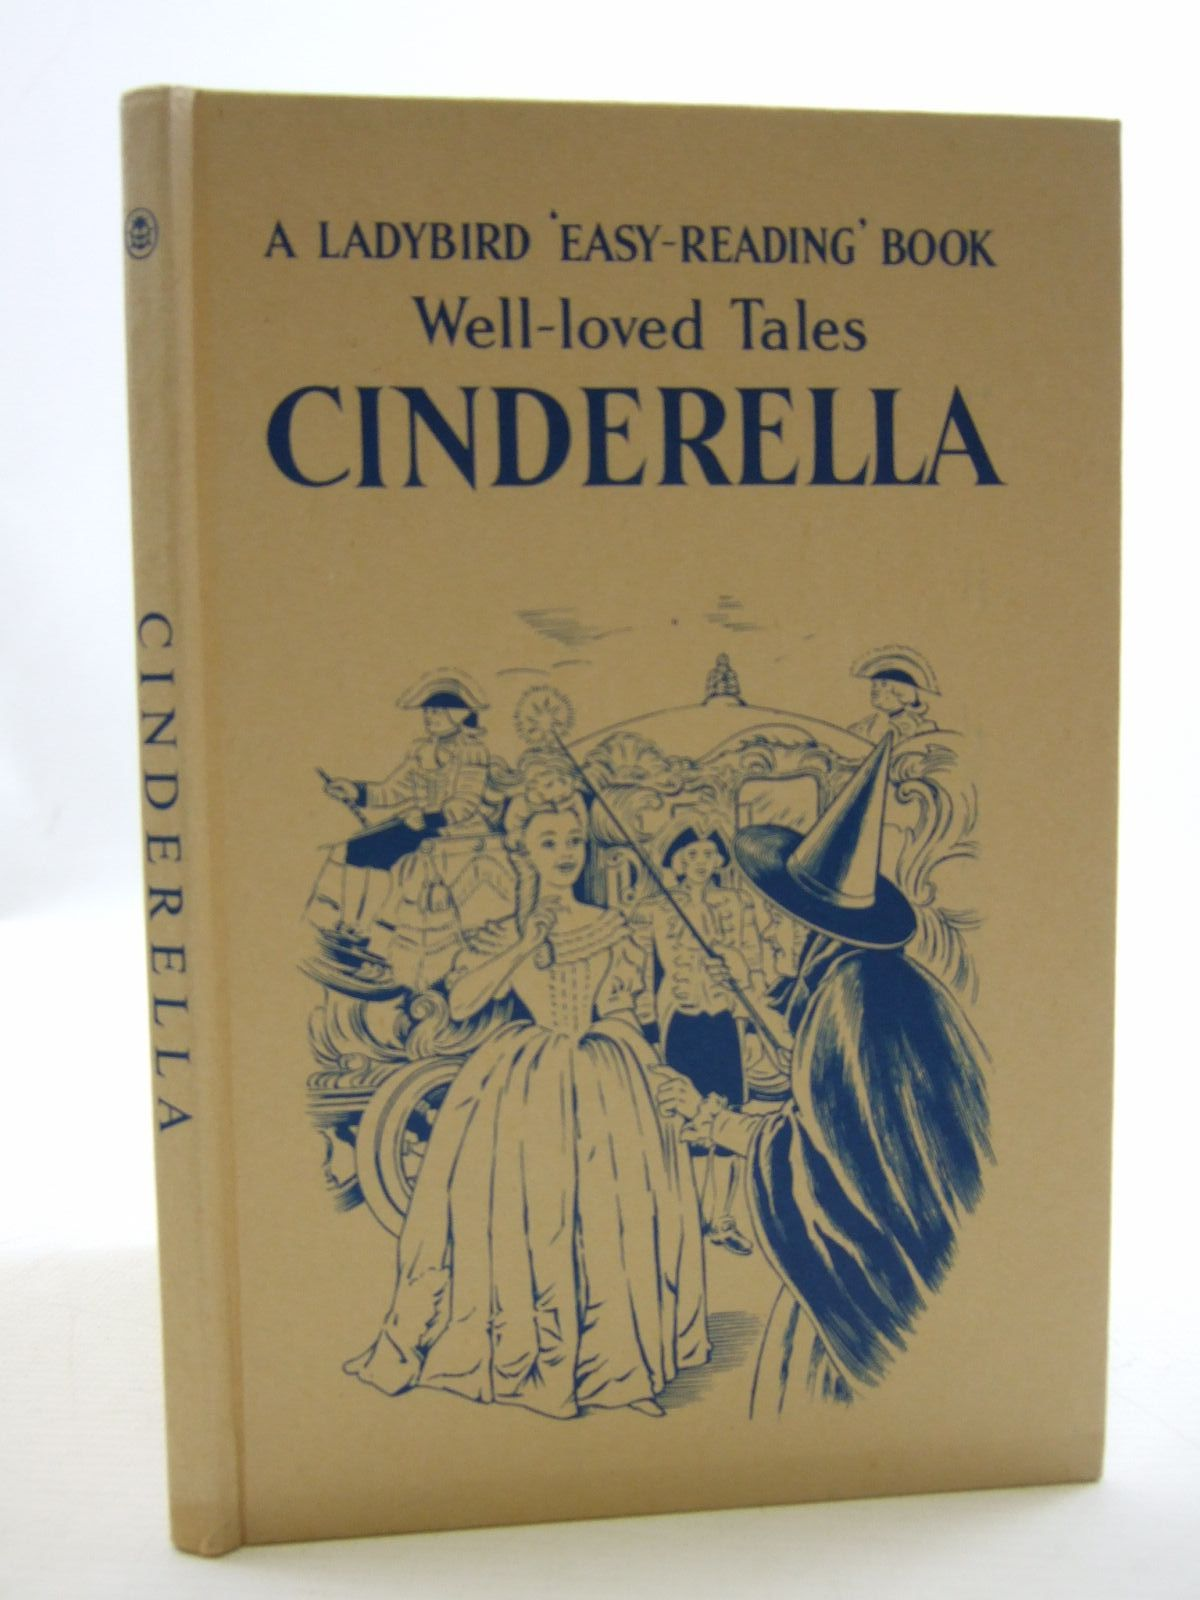 the story of cinderella rewritten I learned that you should feel when writing, not like lord byron on a mountain top, but like a child stringing beads in kindergarten - happy, absorbed and quietly putting one bead on after another.